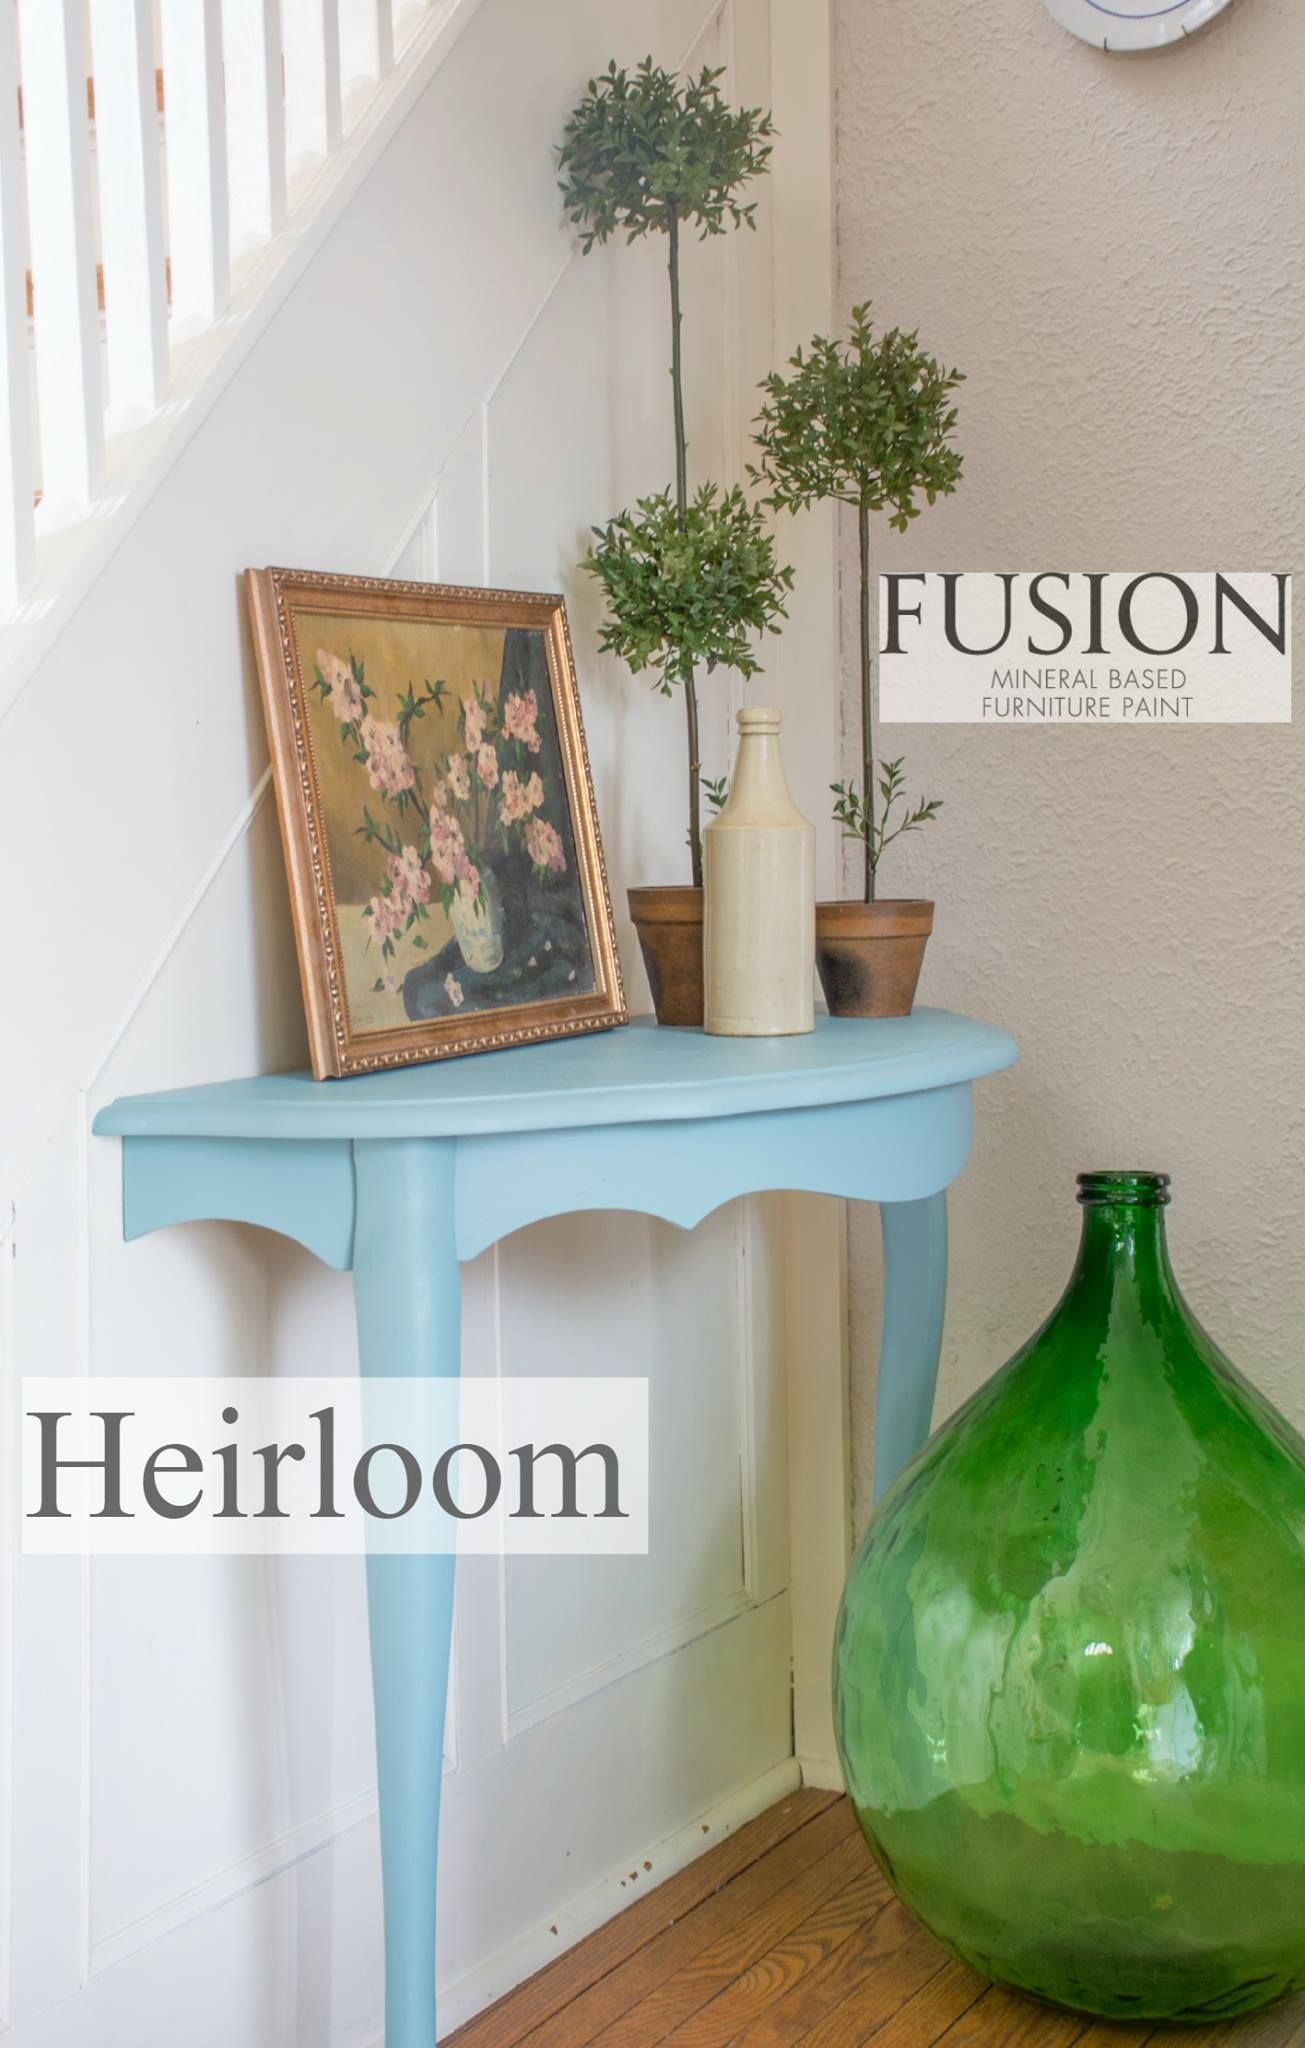 Heirloom Fusion Mineral Paint Heirloom Fusion Mineral